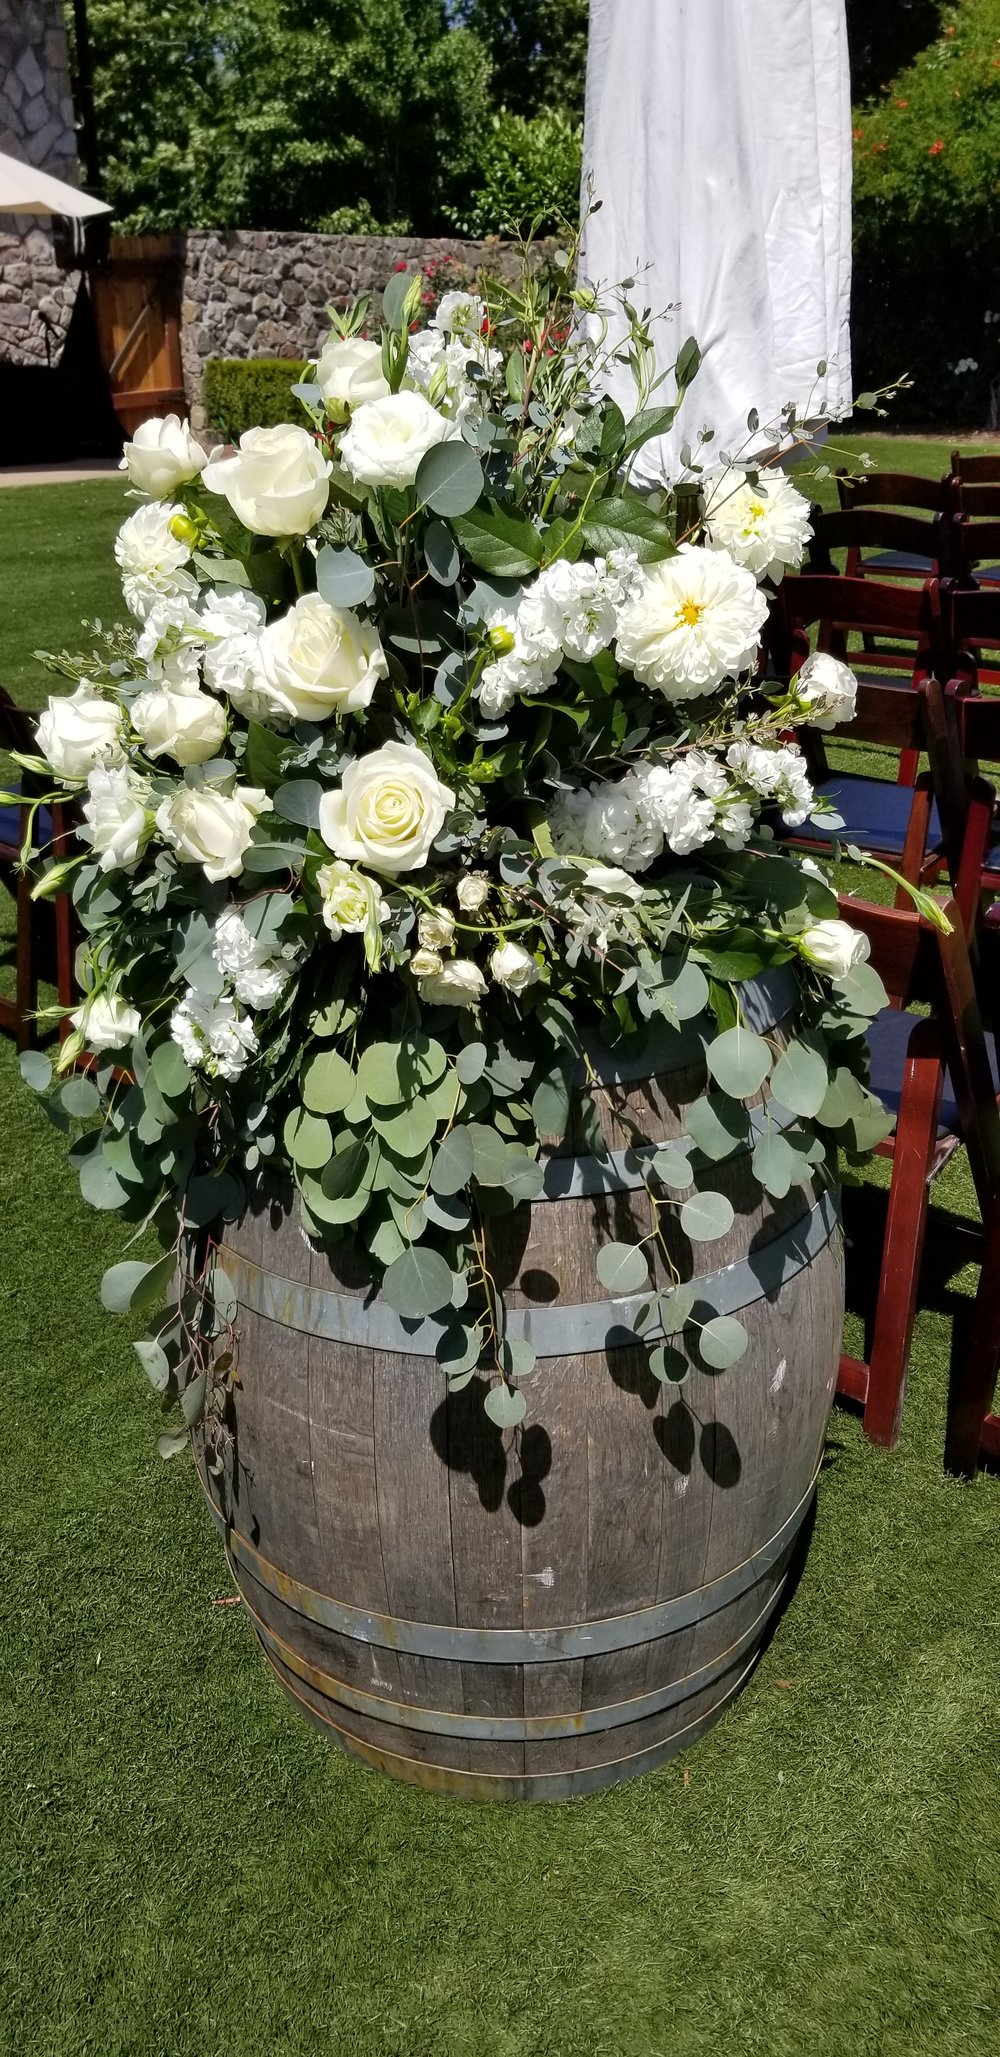 Wine barrel topper, flowing eucalyptus greens and white flowers featuring dahlia, hydrangea and roses at The Lodge Sonoma wedding ceremony.